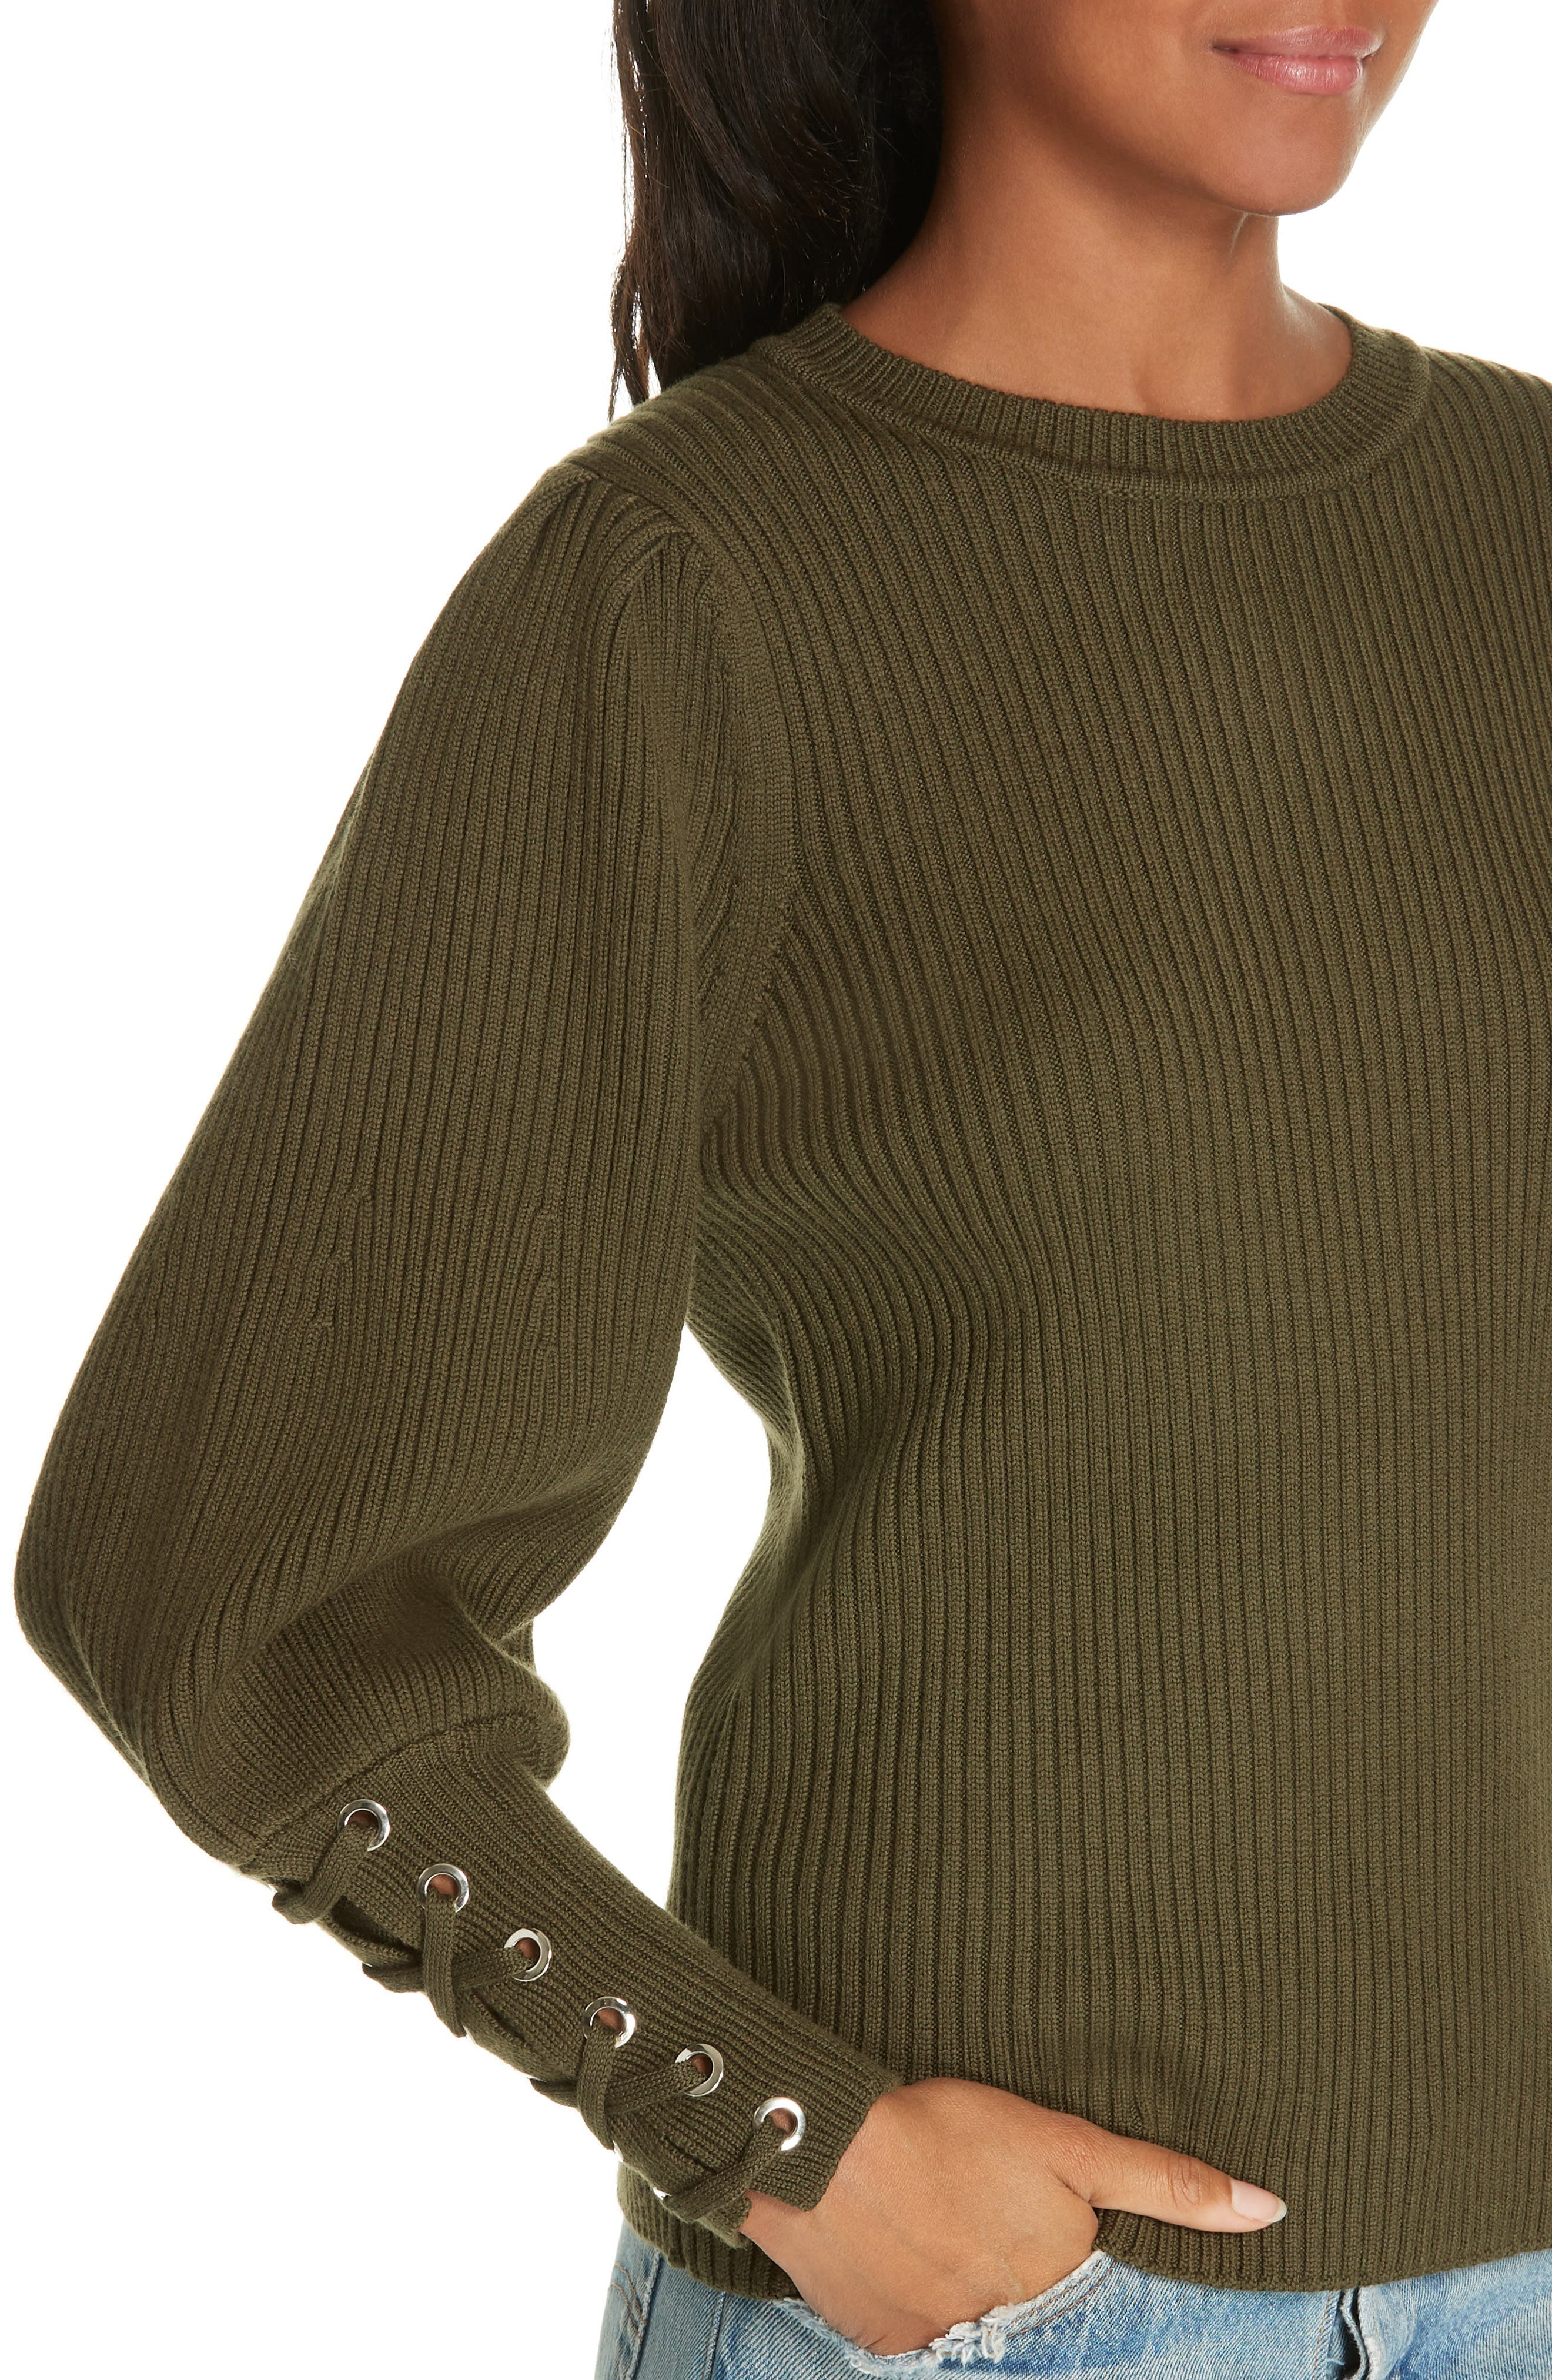 Zelie Lace-Up Cuff Wool Sweater,                             Alternate thumbnail 4, color,                             KAKI